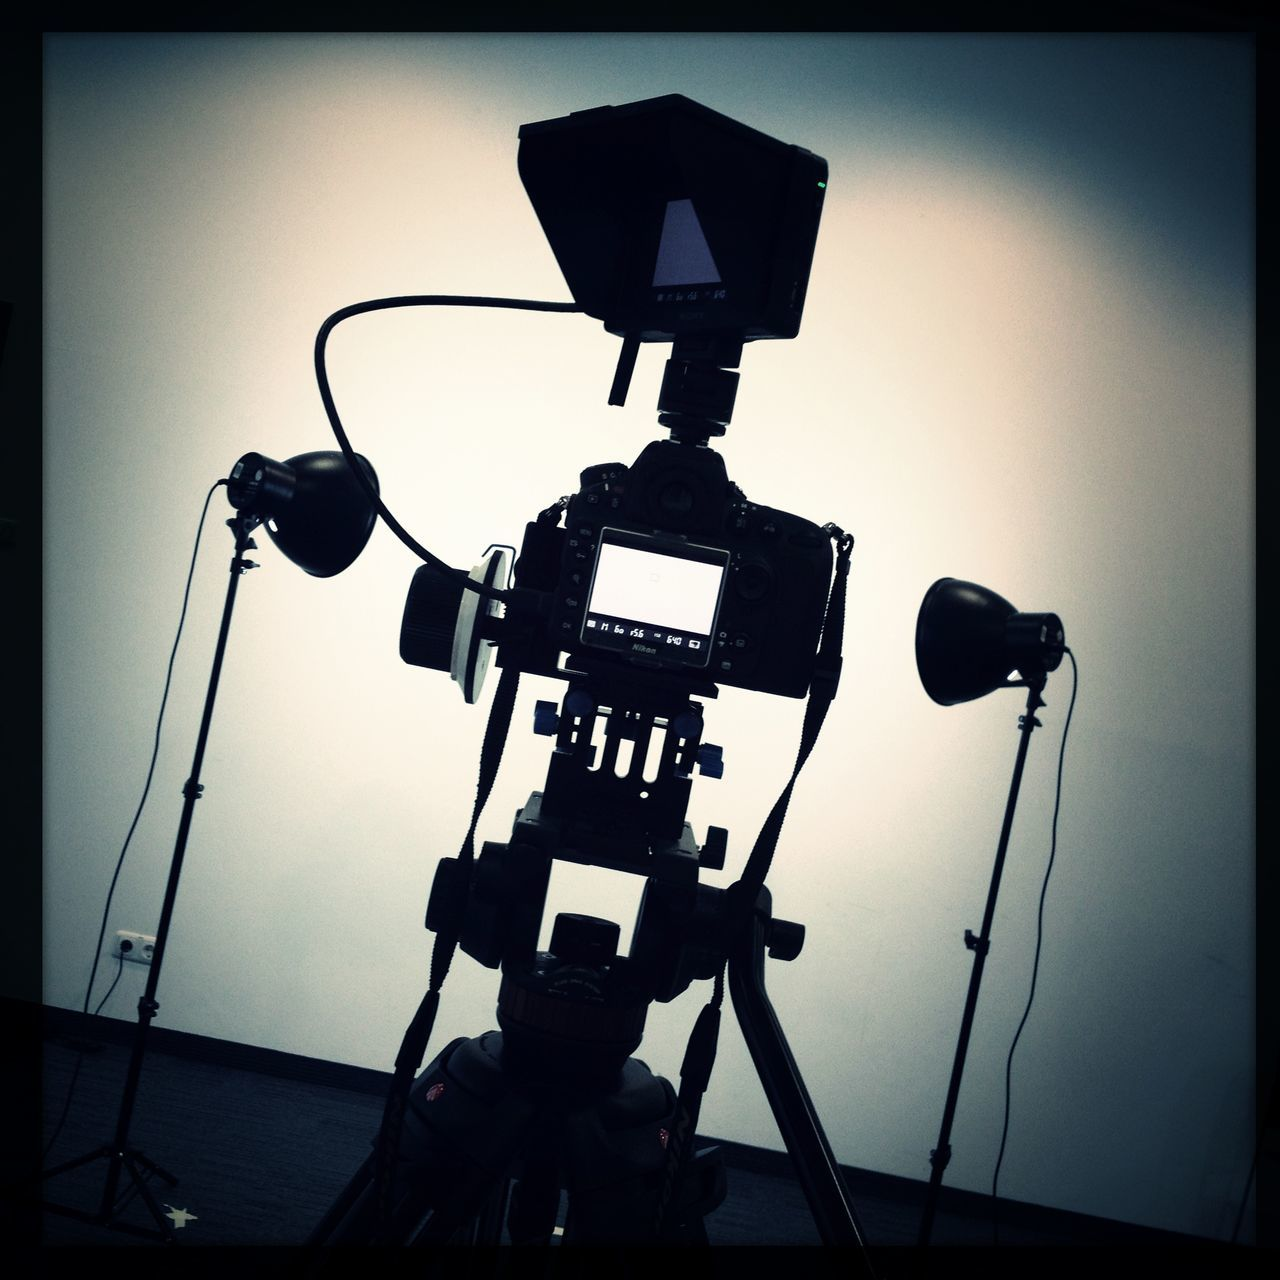 tripod, film studio, lighting equipment, silhouette, photography themes, technology, illuminated, camera - photographic equipment, cable, behind the scenes, film industry, photographing, no people, indoors, sky, television studio, day